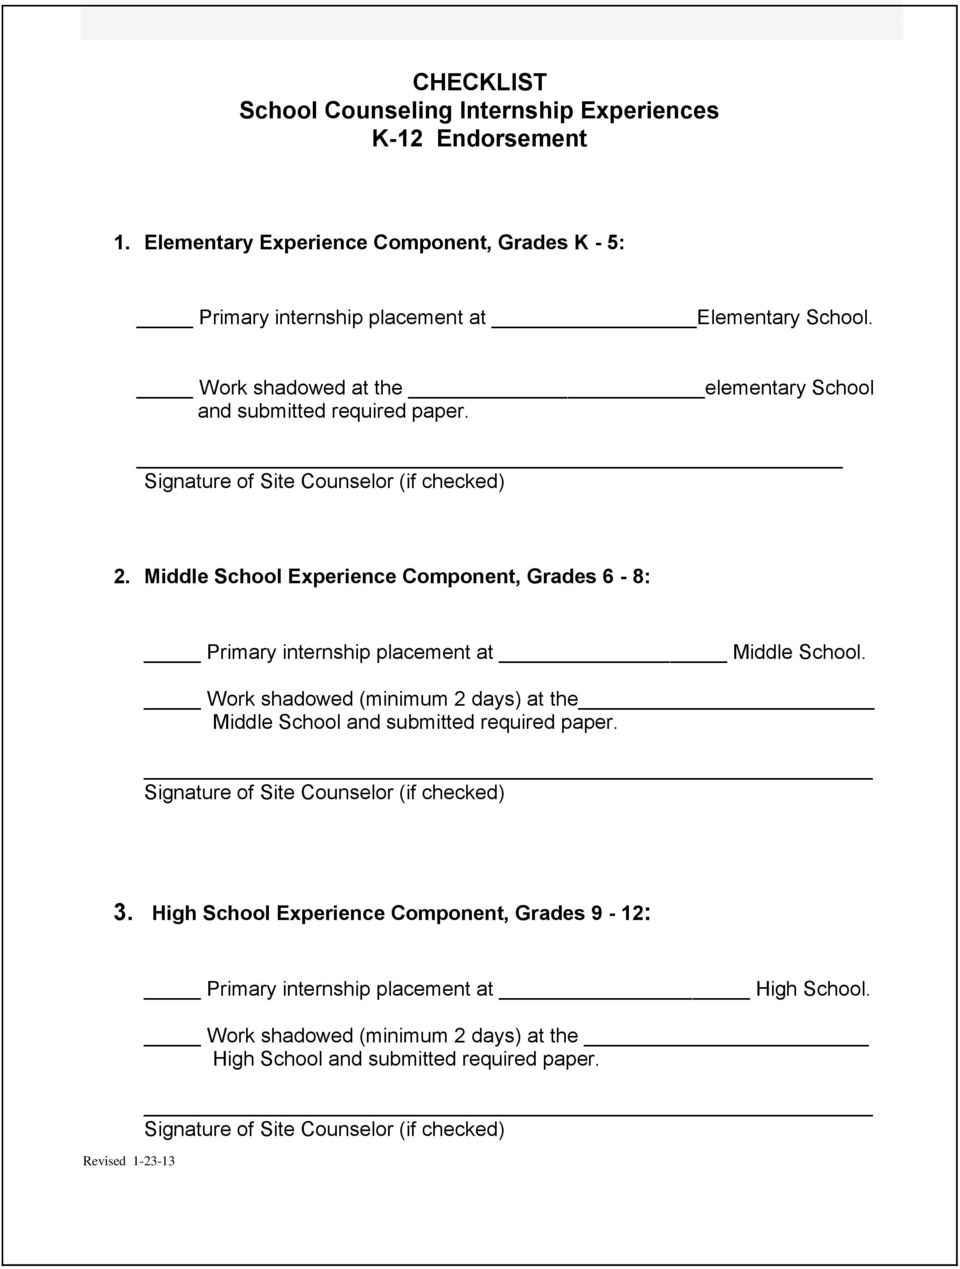 Middle School Experience Component, Grades 6-8: Primary internship placement at Middle School. Work shadowed (minimum 2 days) at the Middle School and submitted required paper.